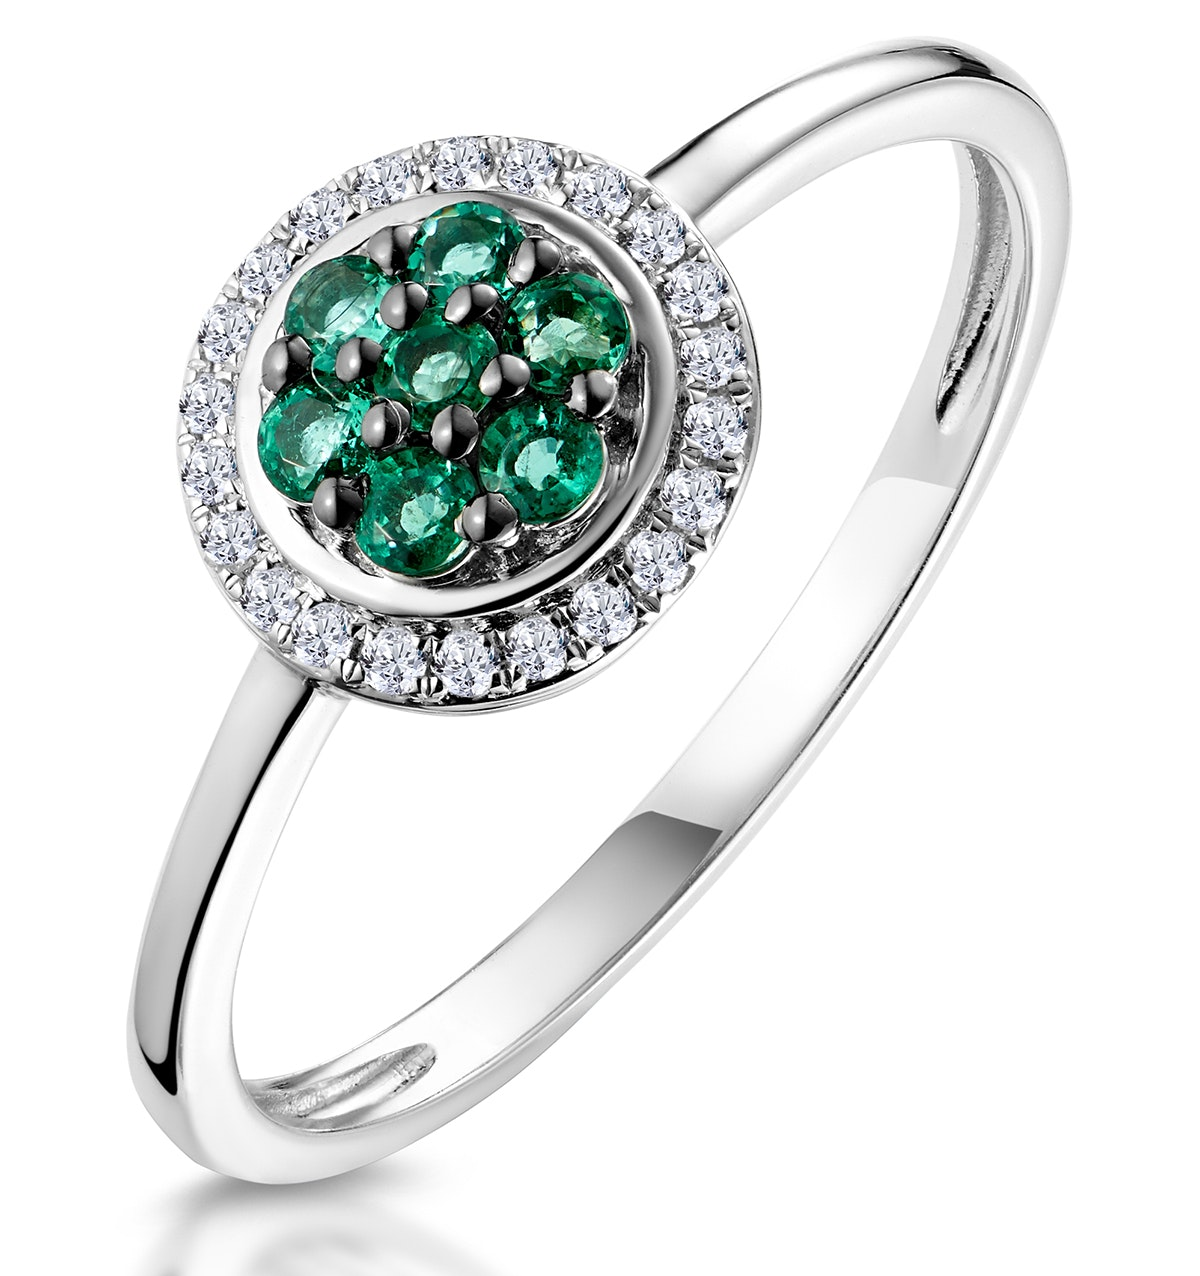 0.16ct Emerald and Diamond Ring in 9K White Gold - Stellato Collection